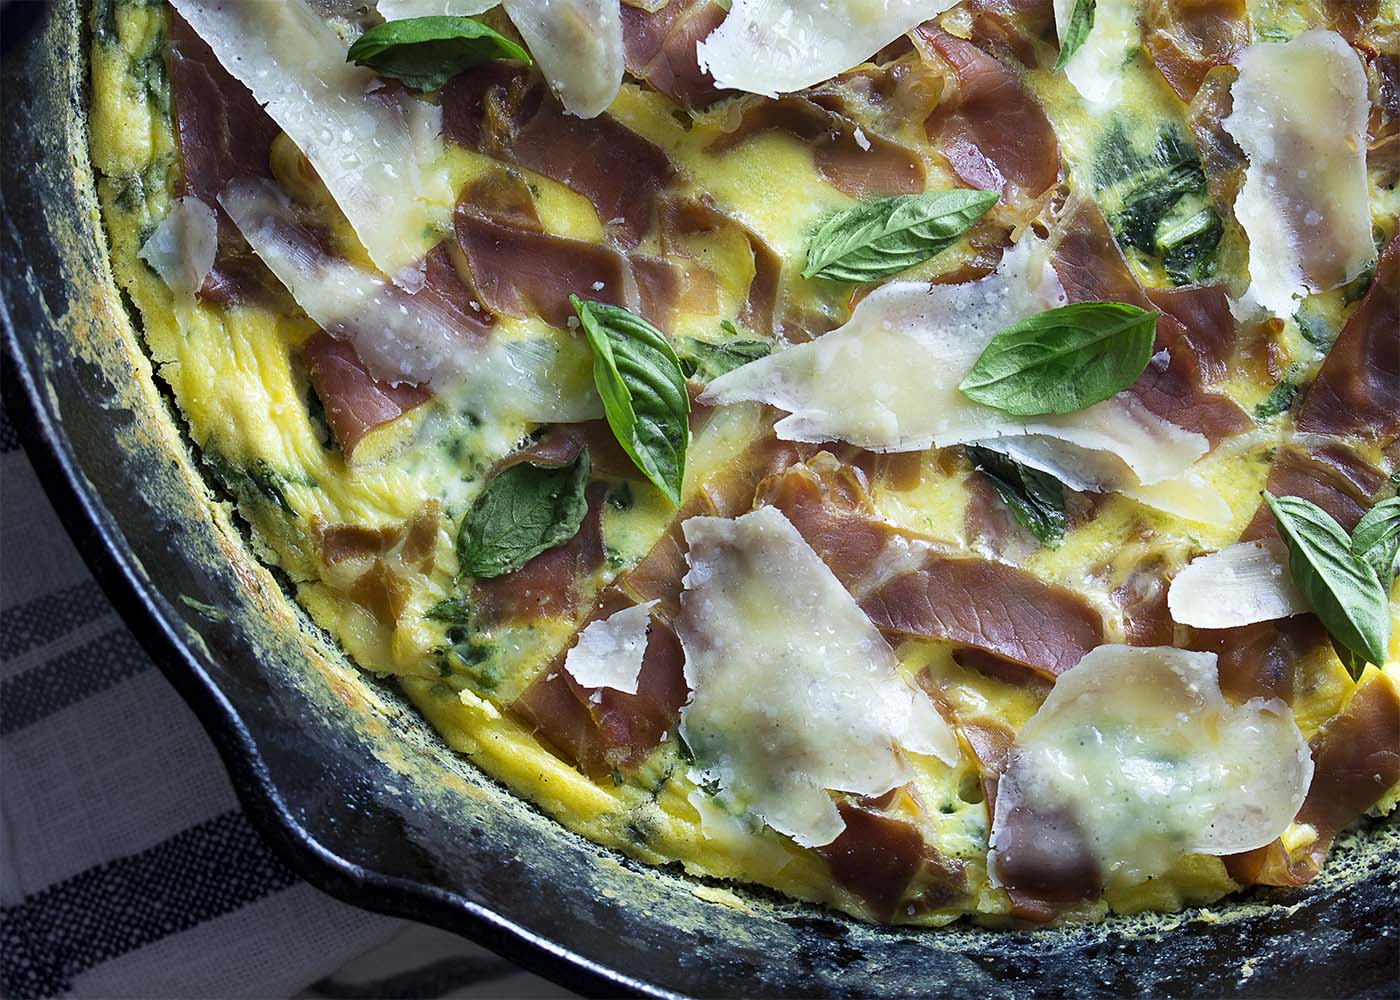 Top view of the finished leek frittata in the cast iron pan. Fluffy eggs are filled with greens and topped with prosciutto, parmesan, and basil leaves.